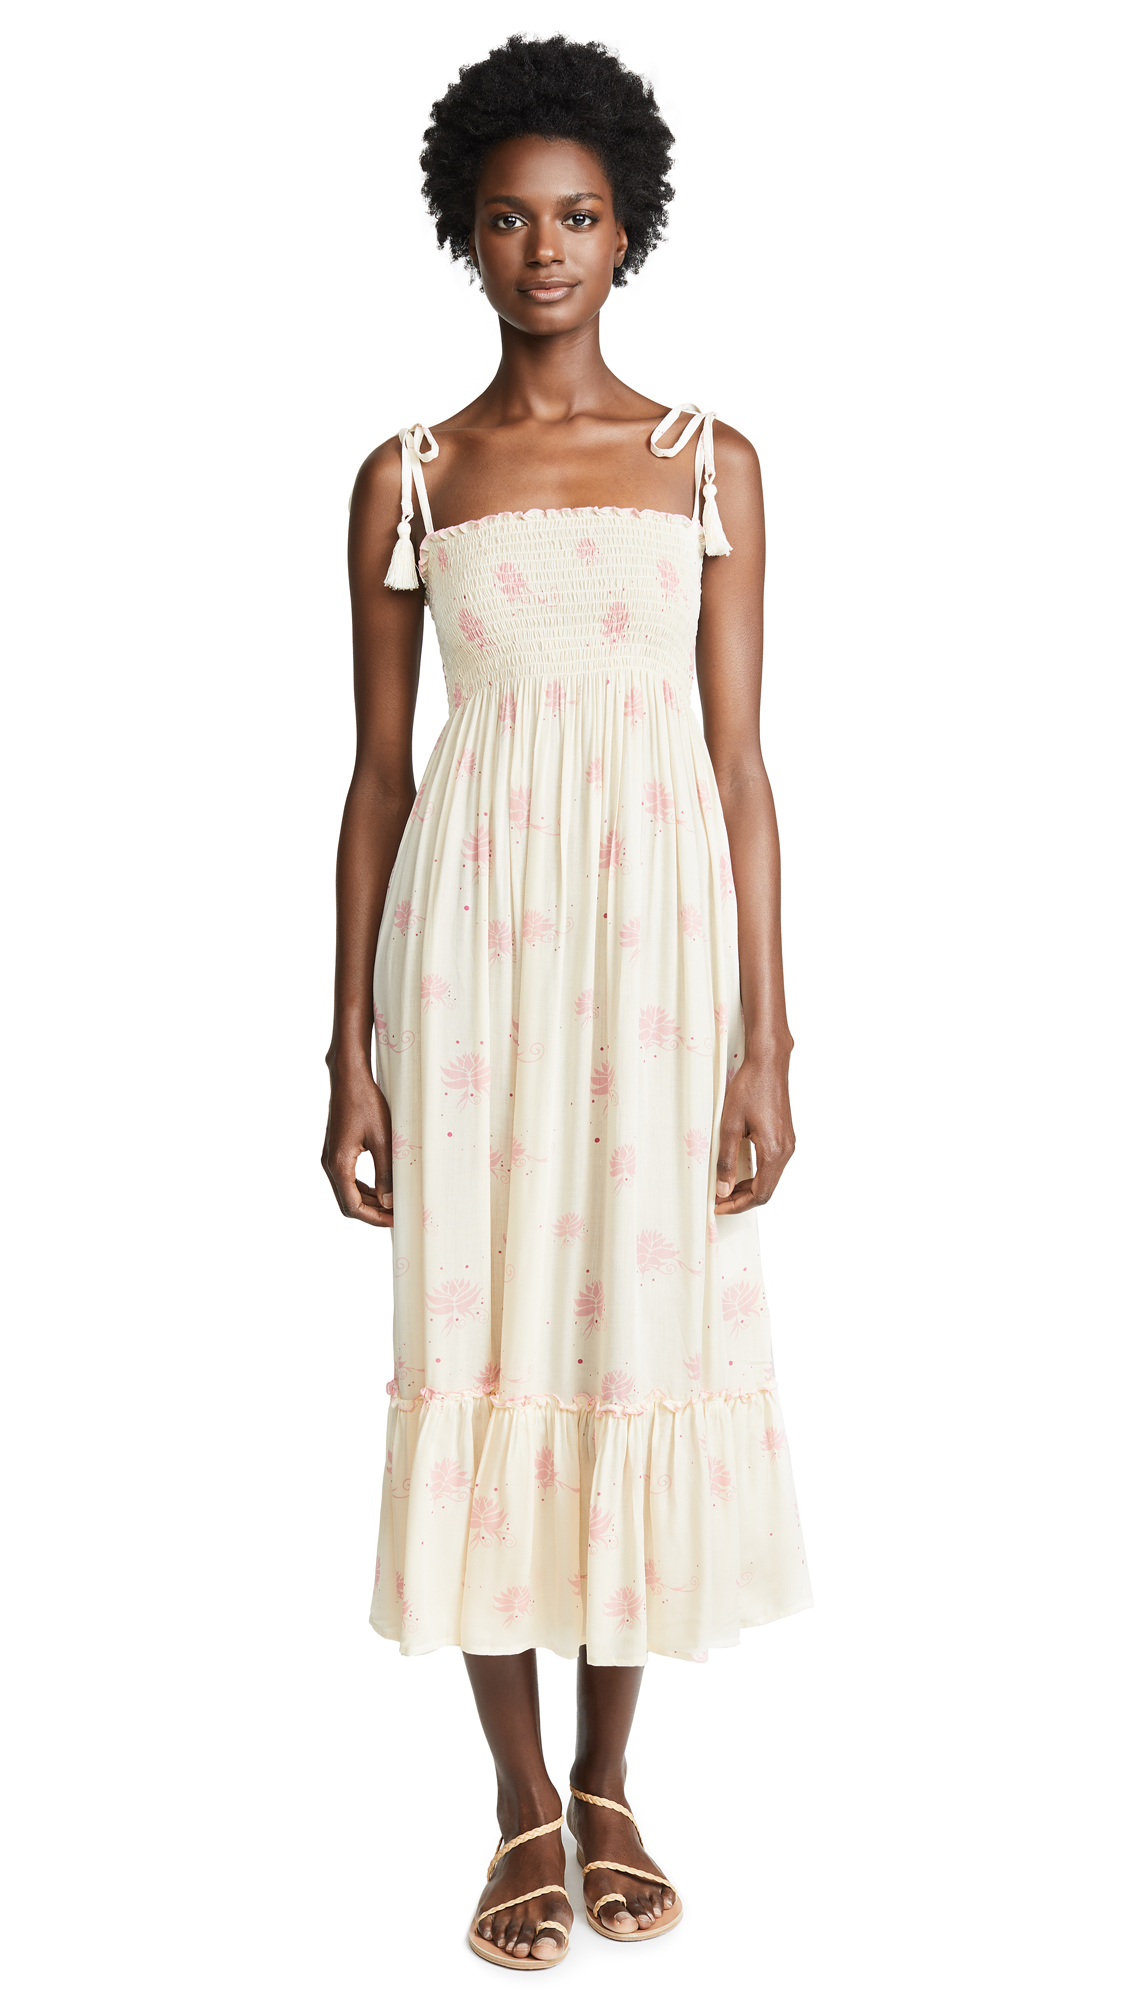 coolchange Floating Lilly Piper Dress In Pearl/Candy